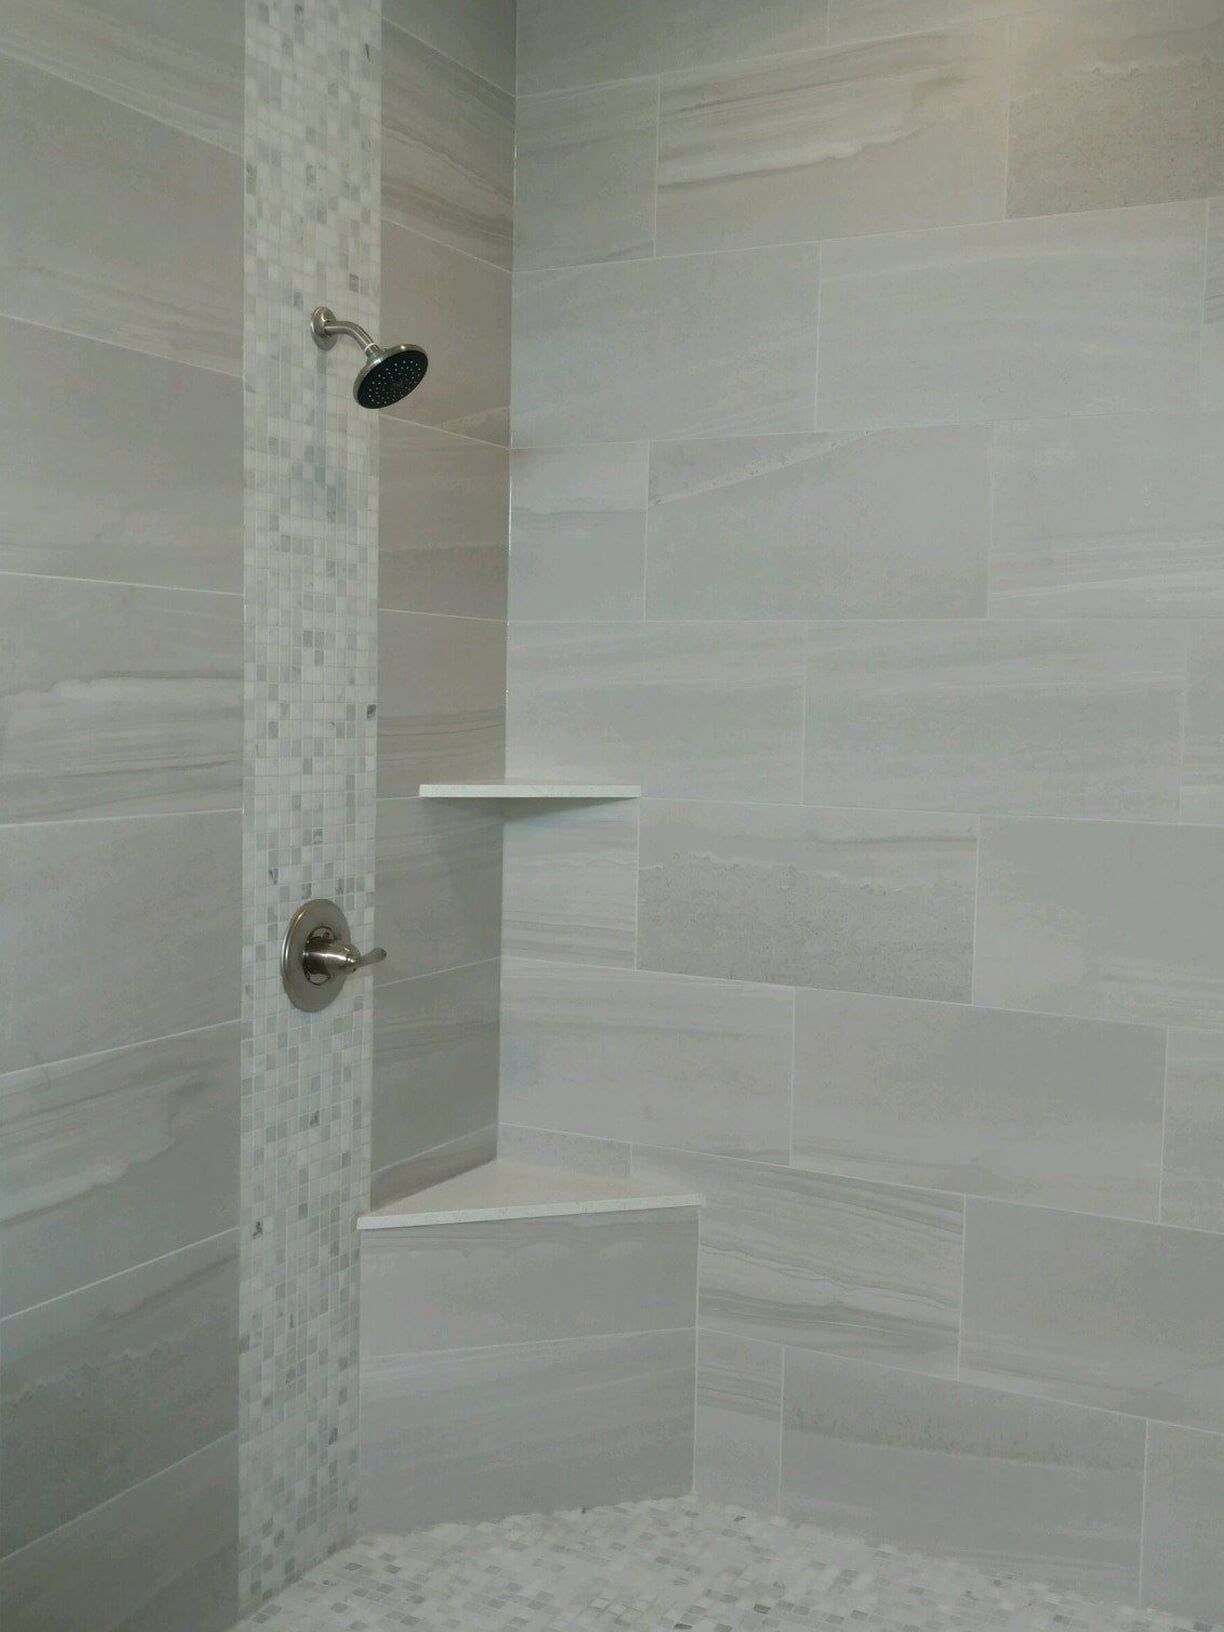 Shower with builtin shelving in Baytown, TX from Baytown Floors